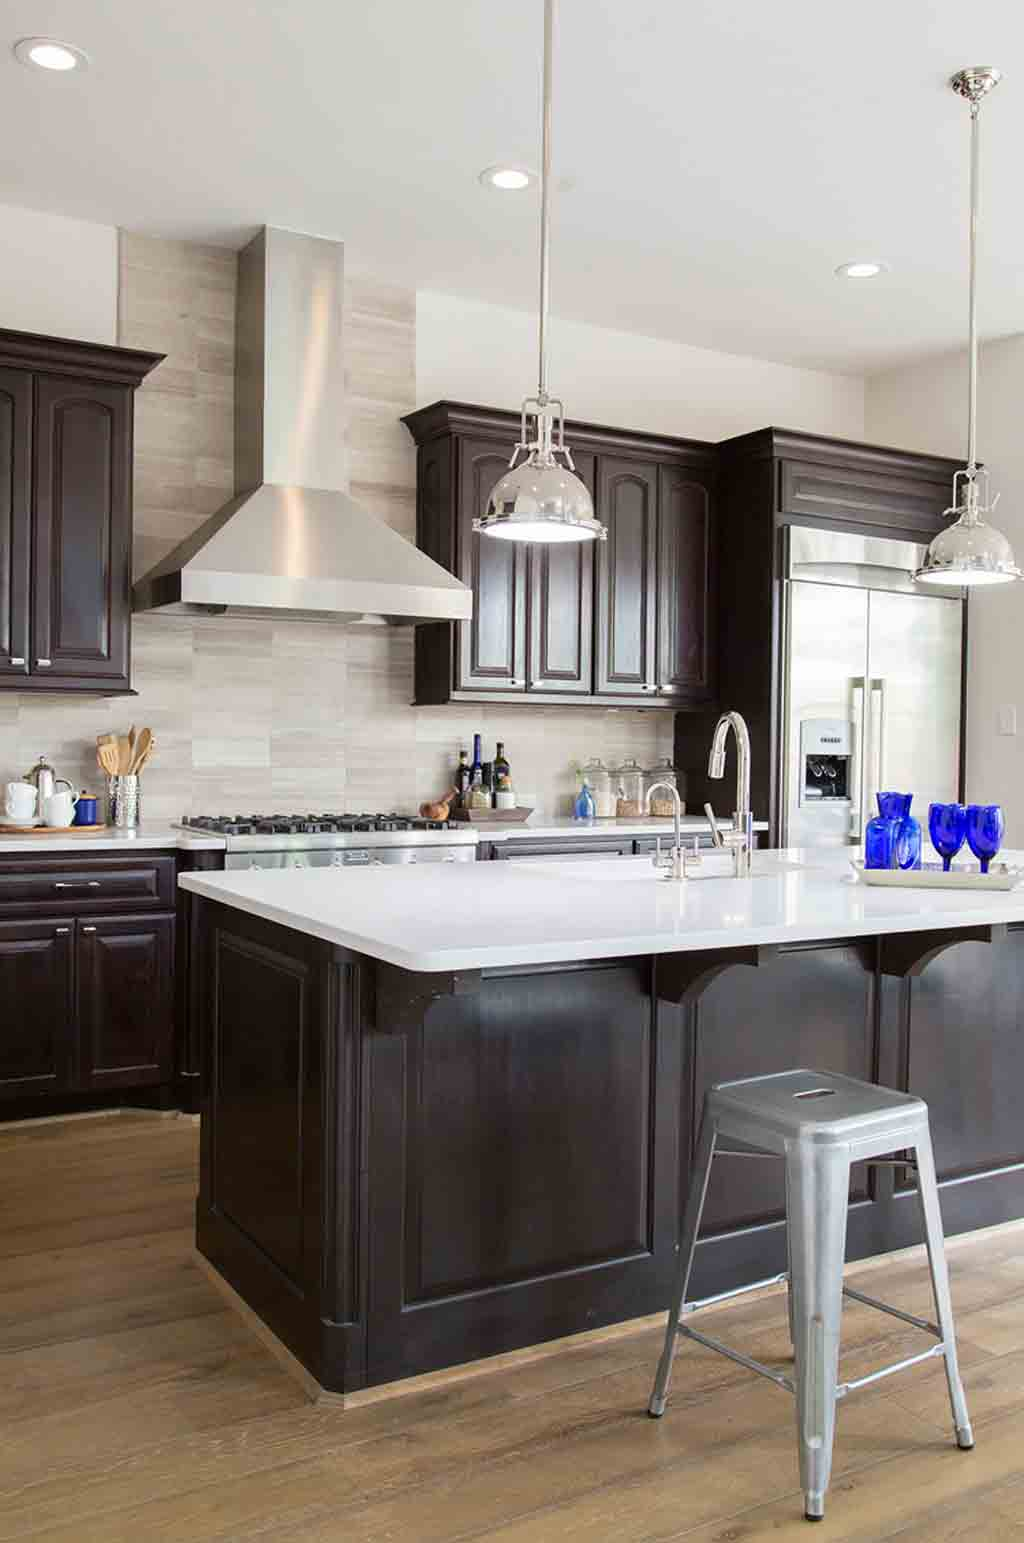 Coffee Color Kitchen Cabinets The Best Wall Colors To Update Stained Cabinets Rugh Design